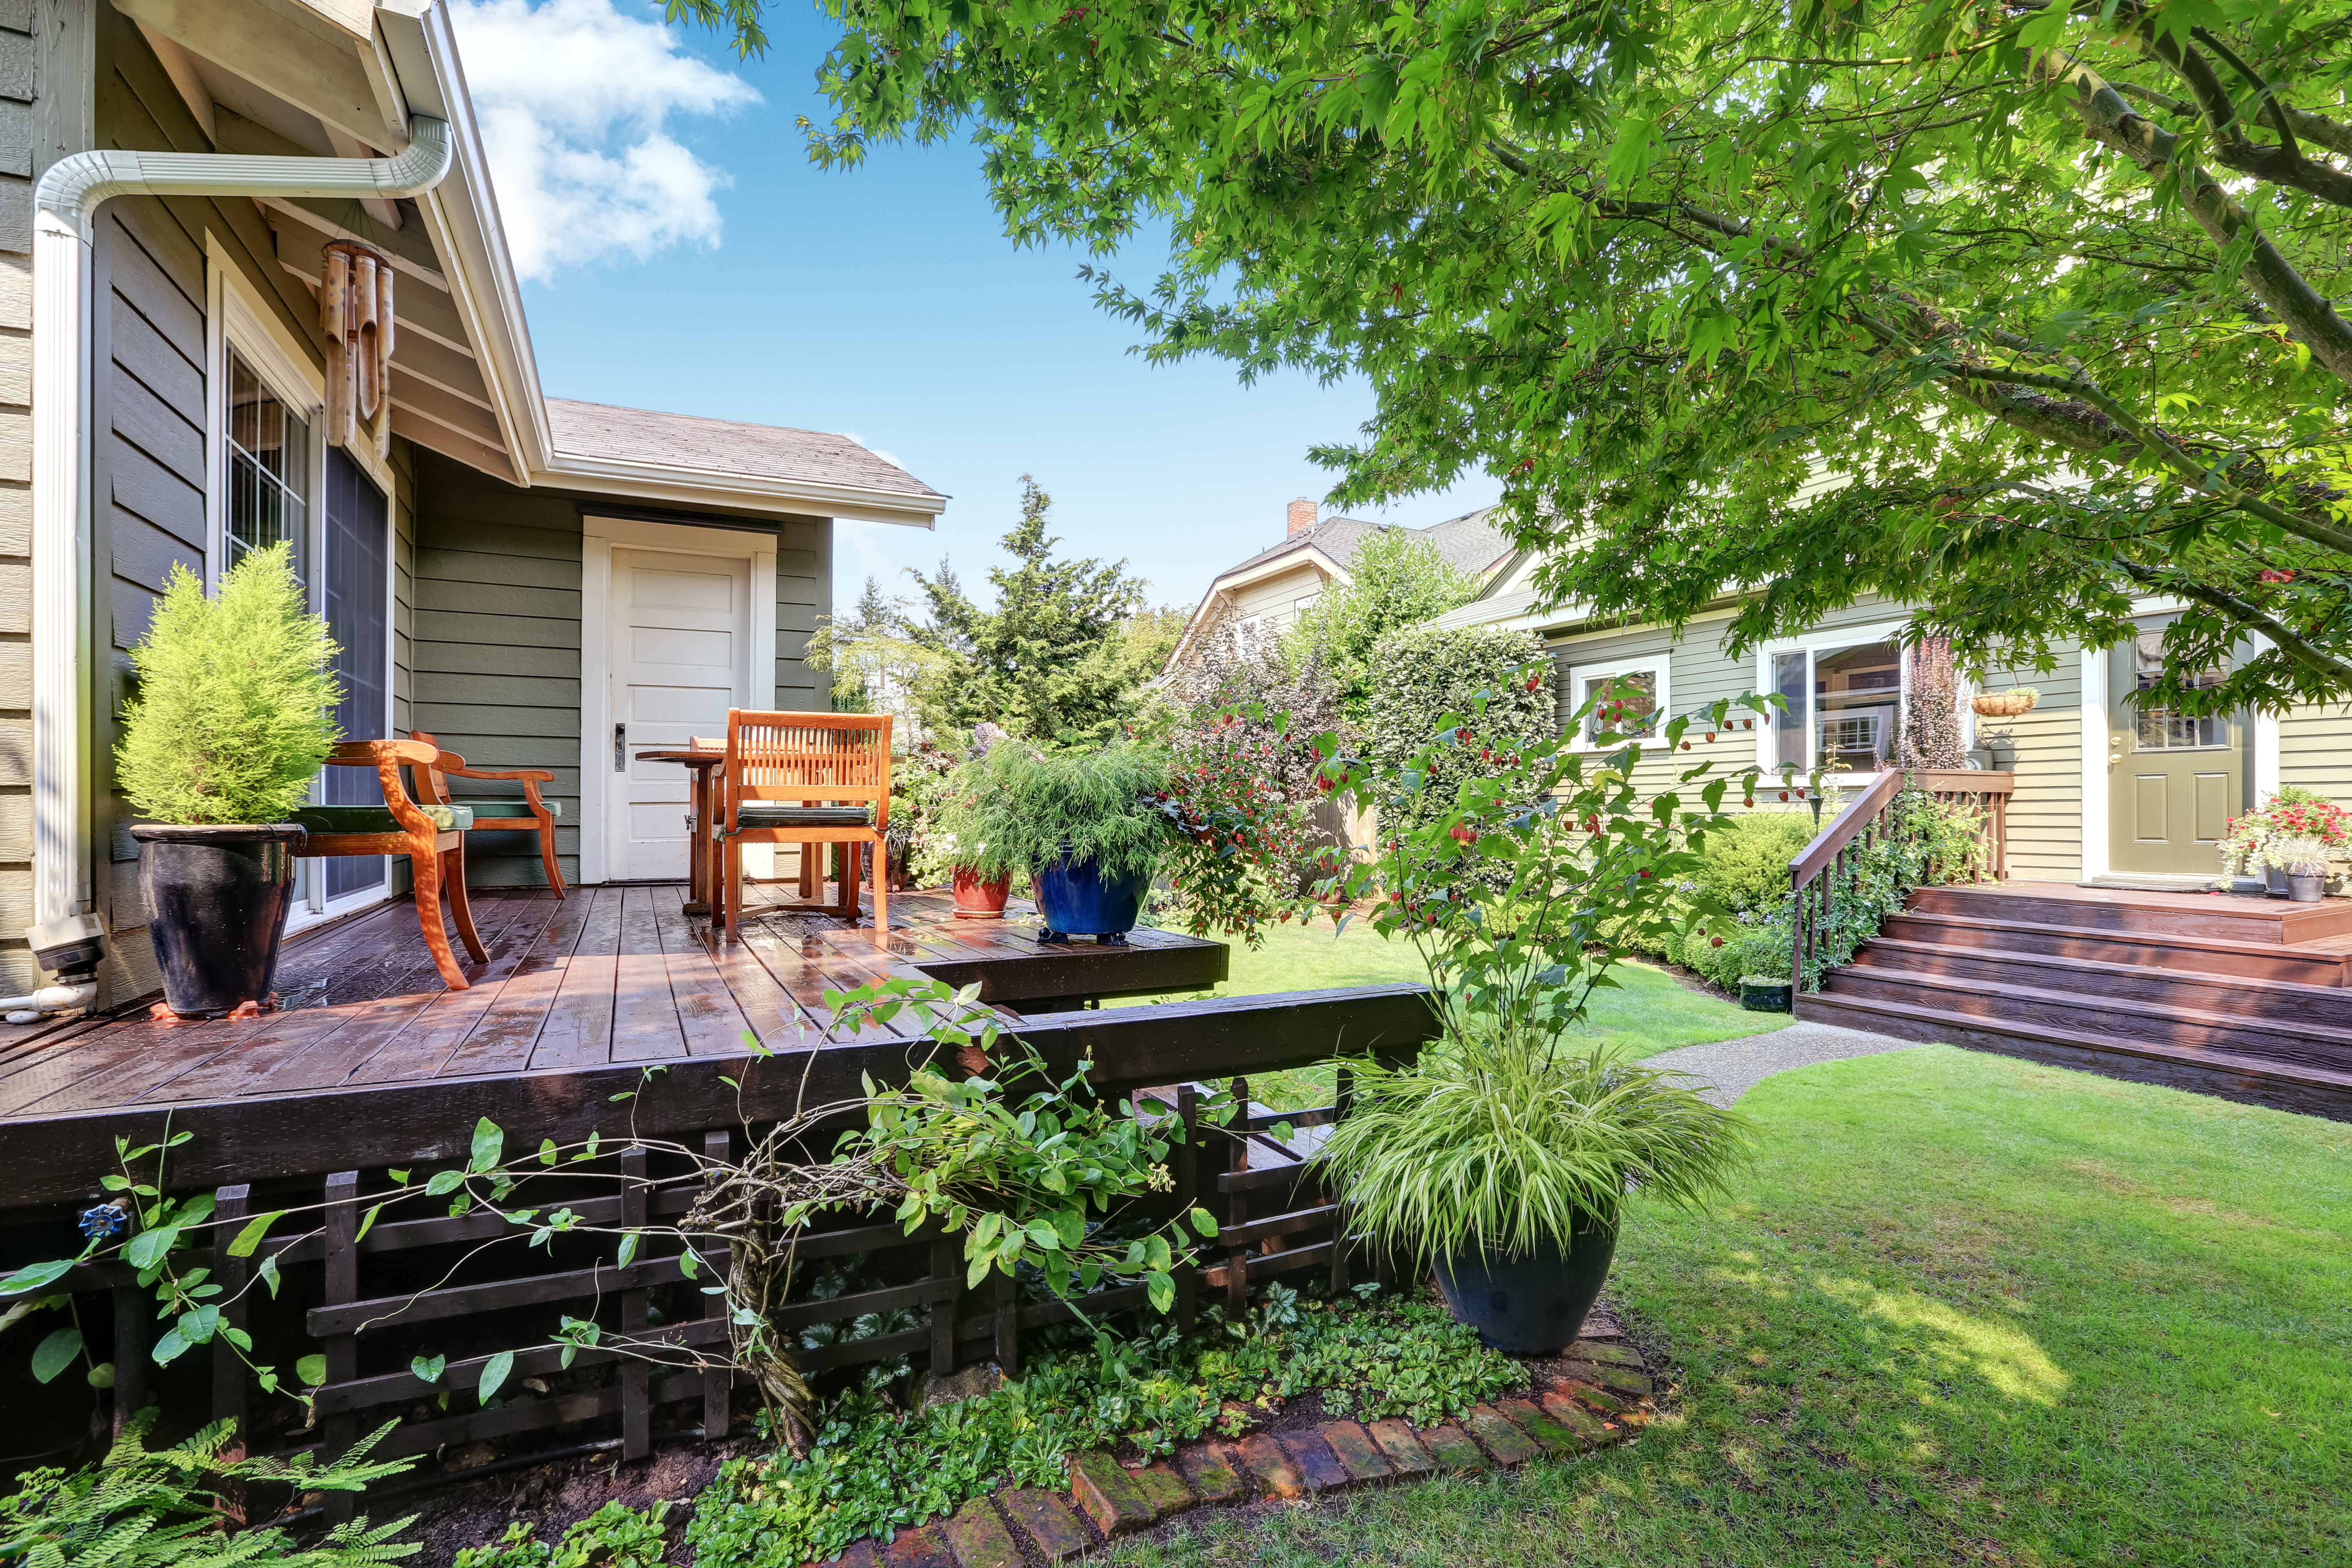 Two homes are separated by a backyard lawn.